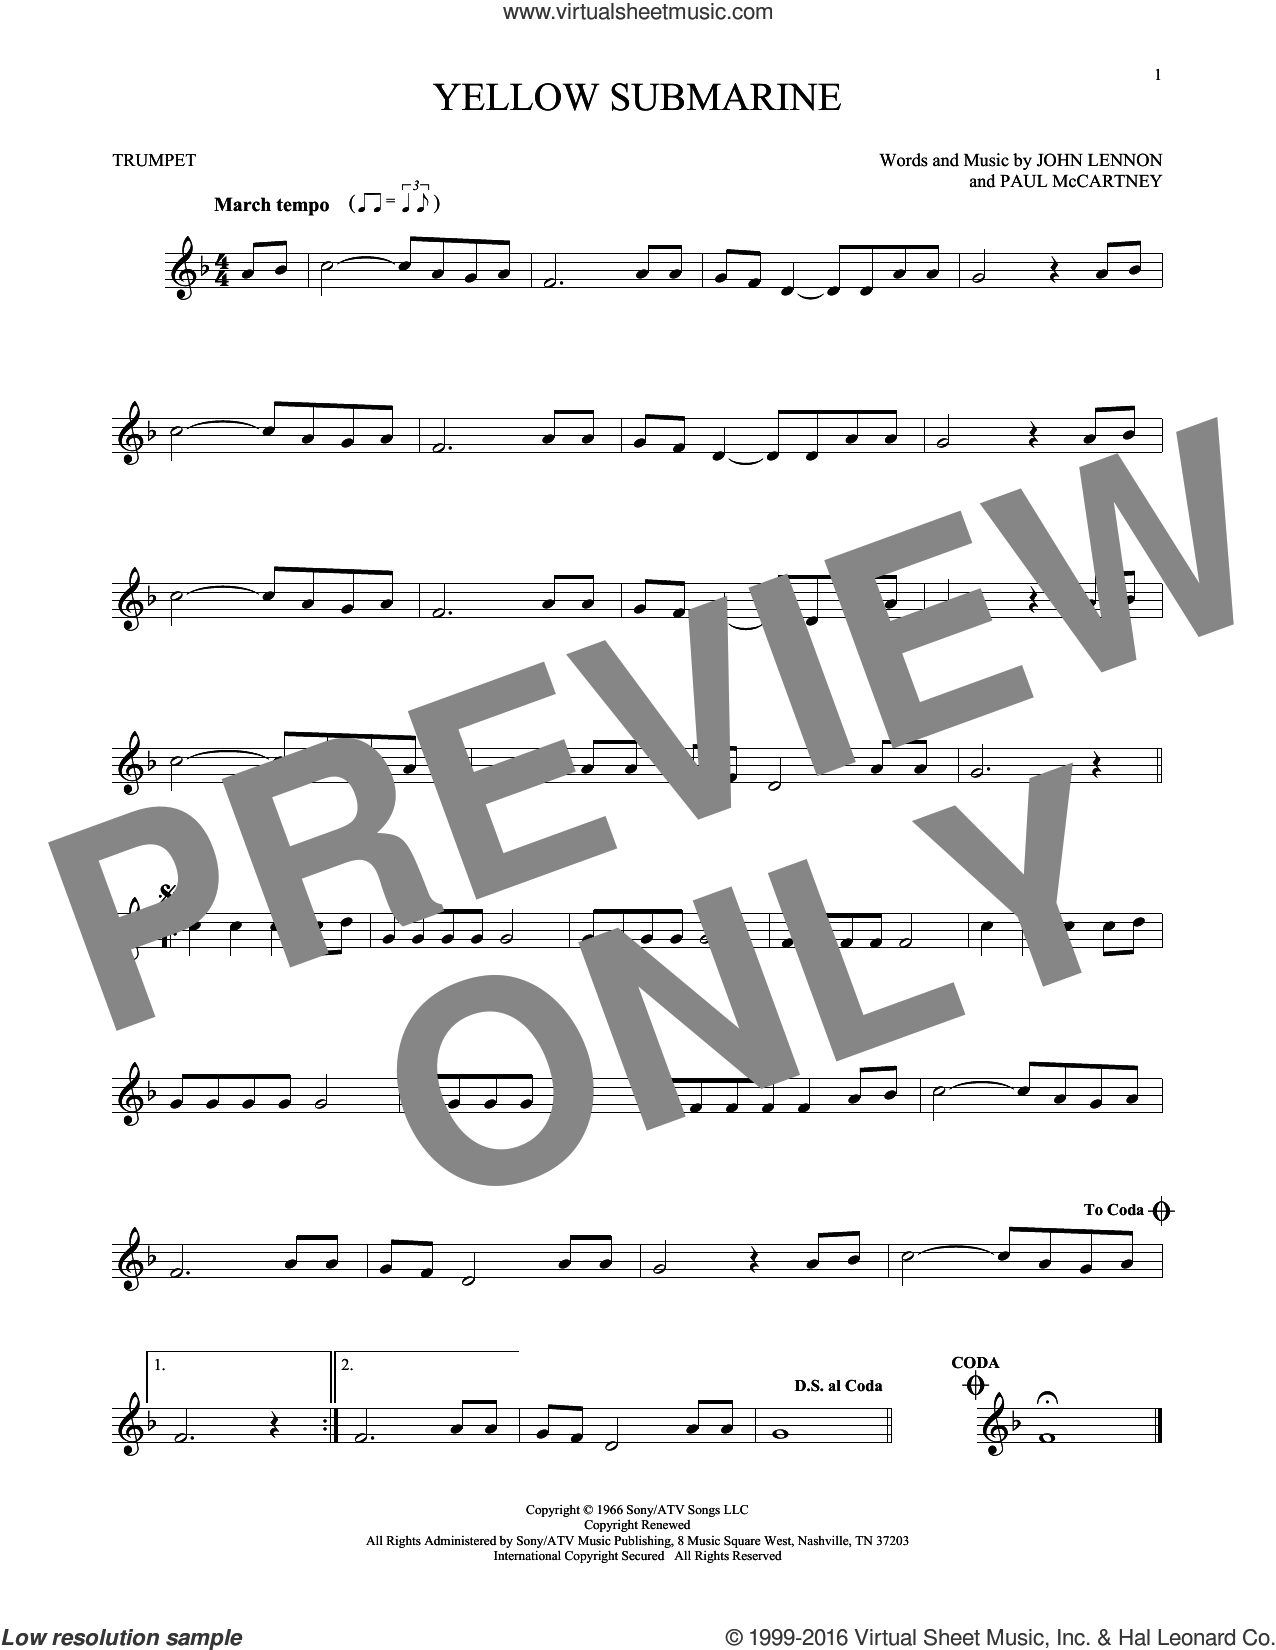 Yellow Submarine sheet music for trumpet solo by The Beatles, John Lennon and Paul McCartney, intermediate skill level